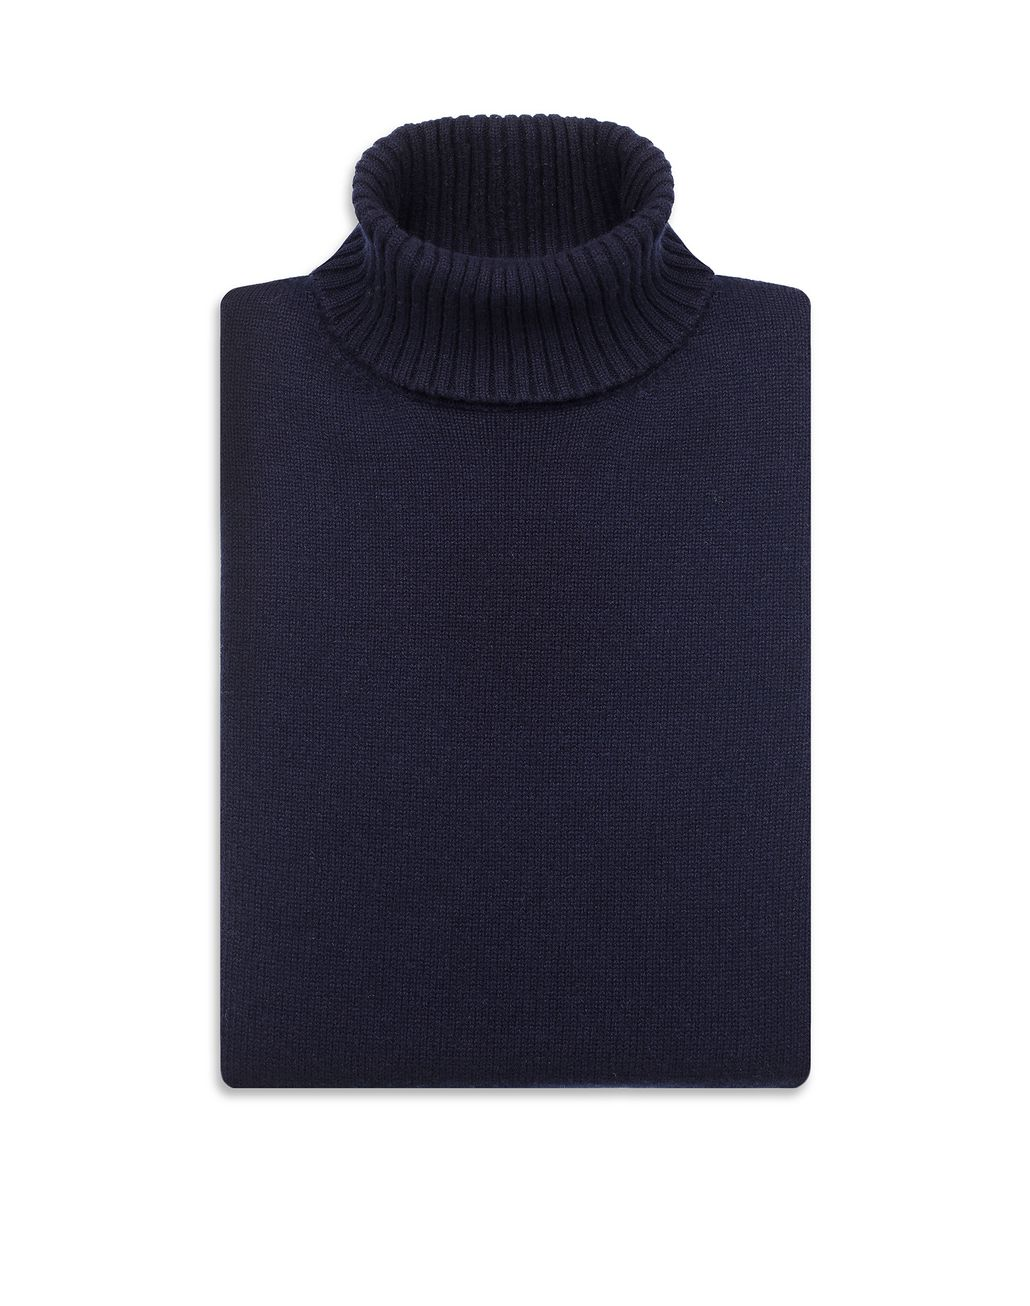 BRIONI Navy Blue Turtleneck Sweater Knitwear Man e